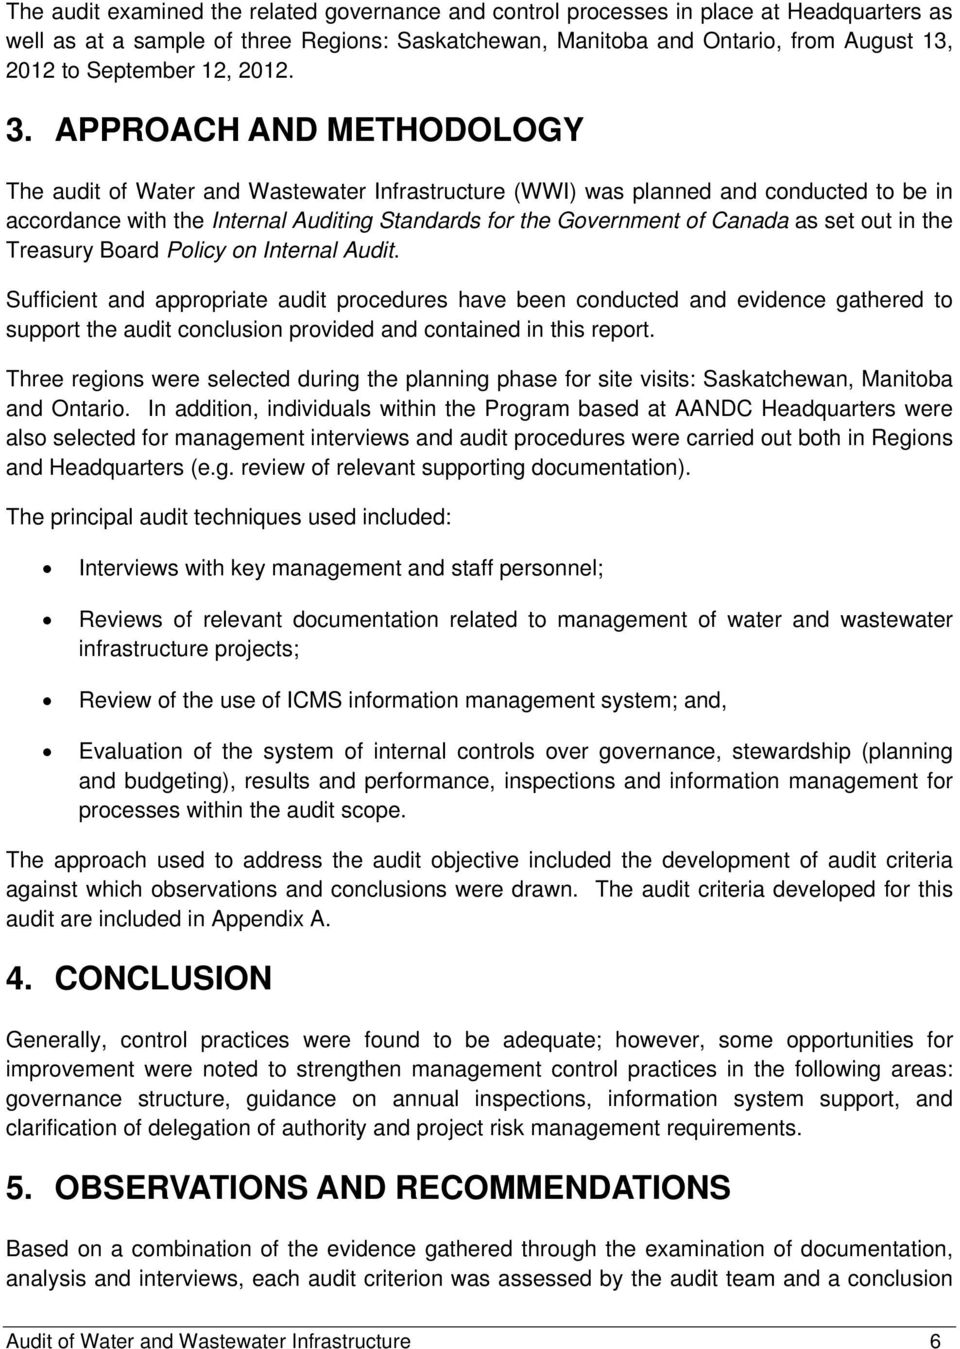 APPROACH AND METHODOLOGY The audit of Water and Wastewater Infrastructure (WWI) was planned and conducted to be in accordance with the Internal Auditing Standards for the Government of Canada as set